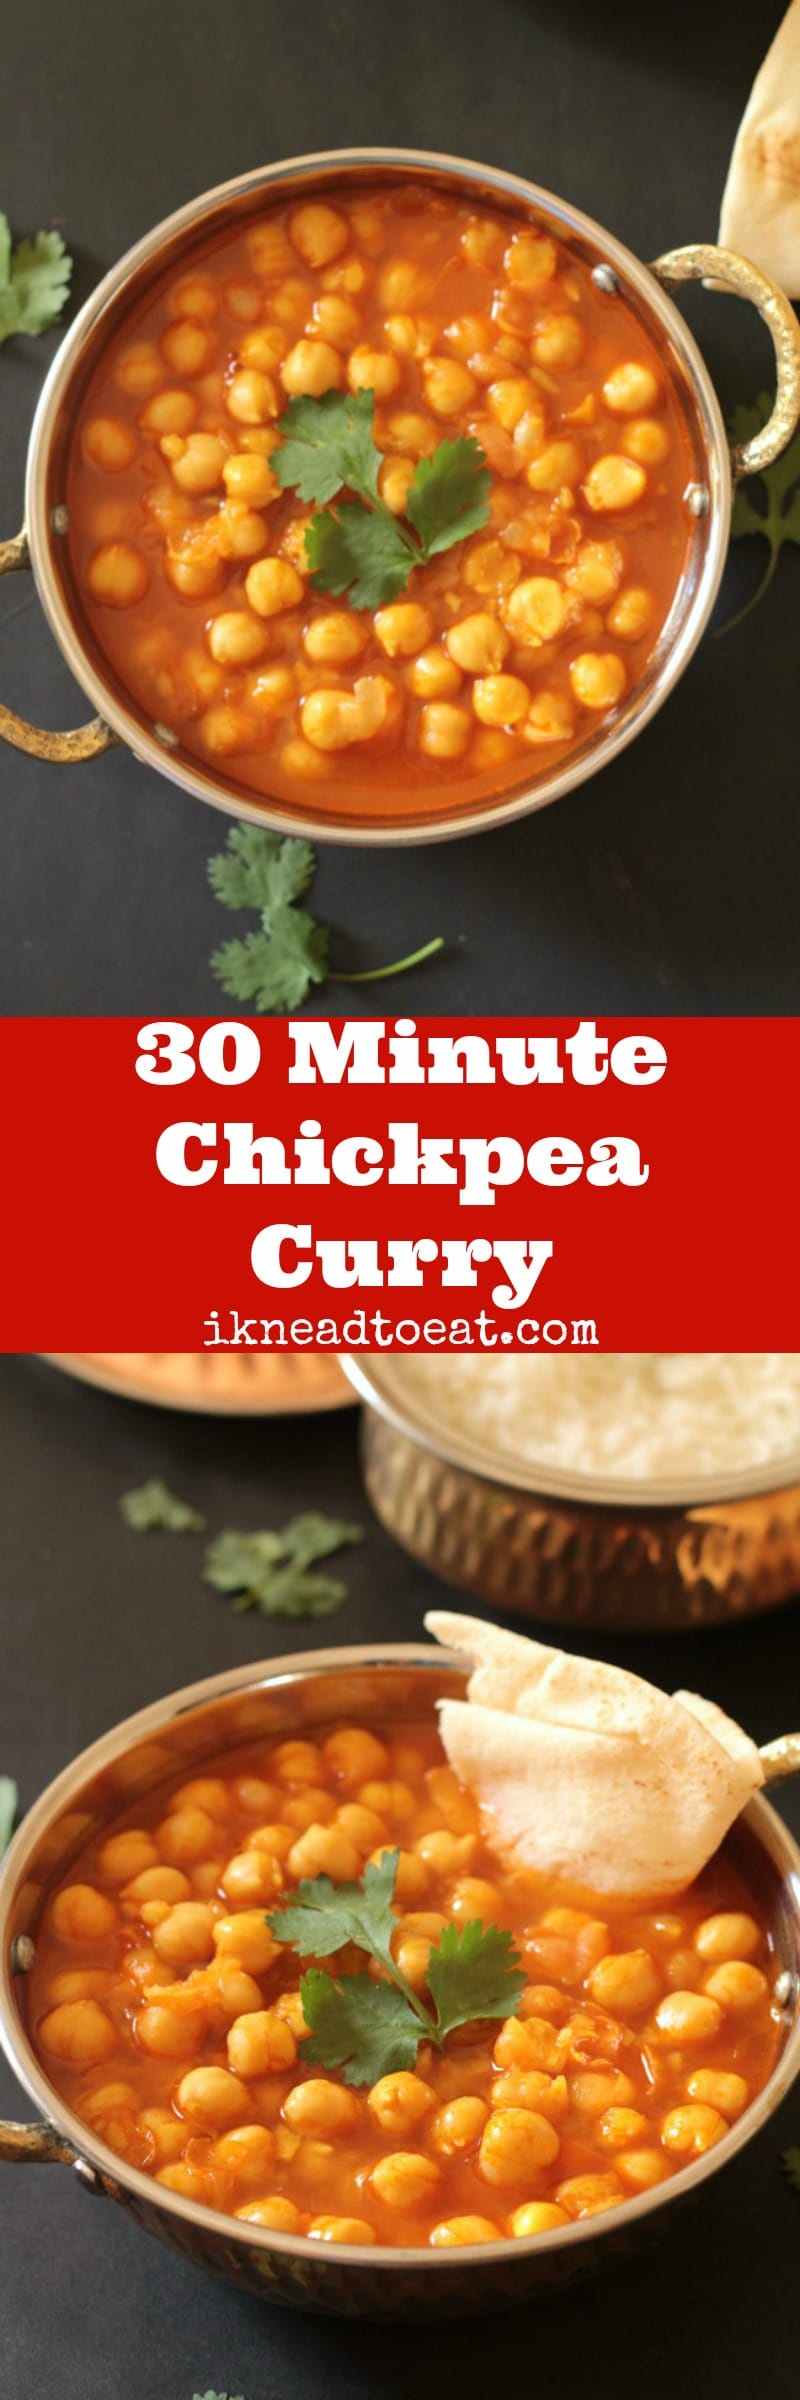 30 Minute Chickpea Curry